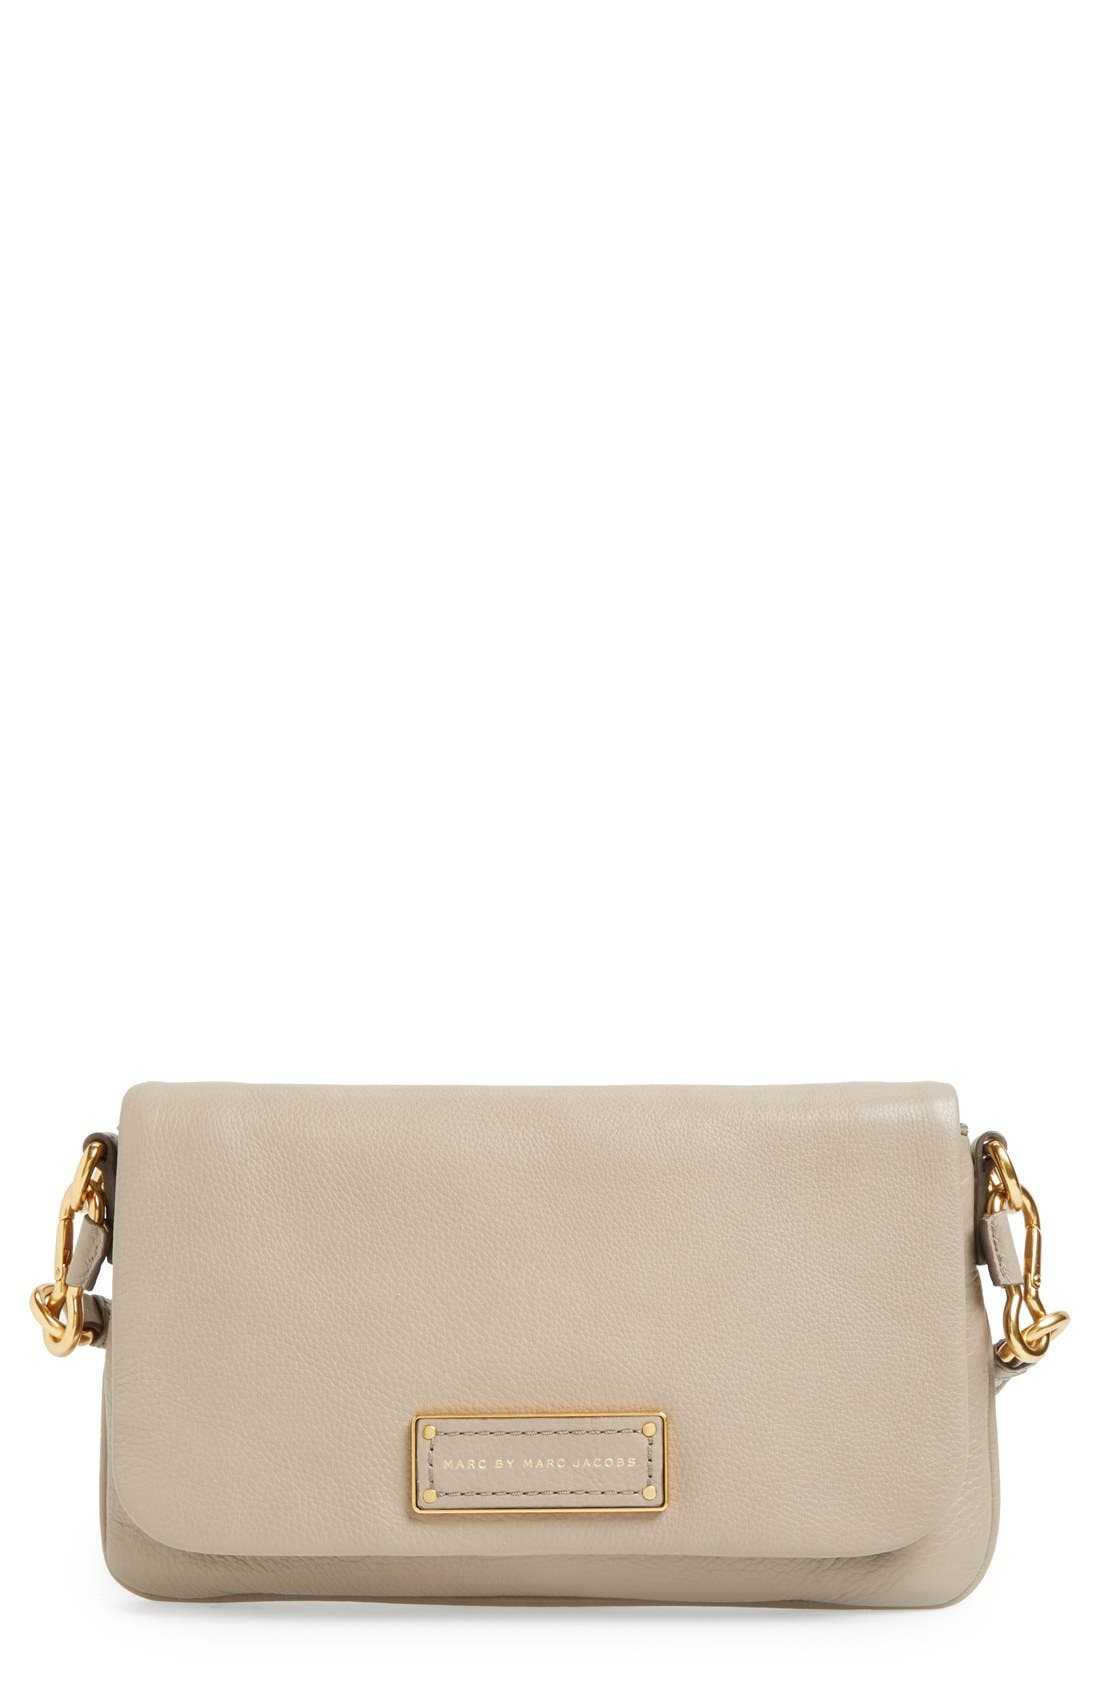 Main Image - MARC BY MARC JACOBS 'Too Hot to Handle - Percy' Crossbody Bag